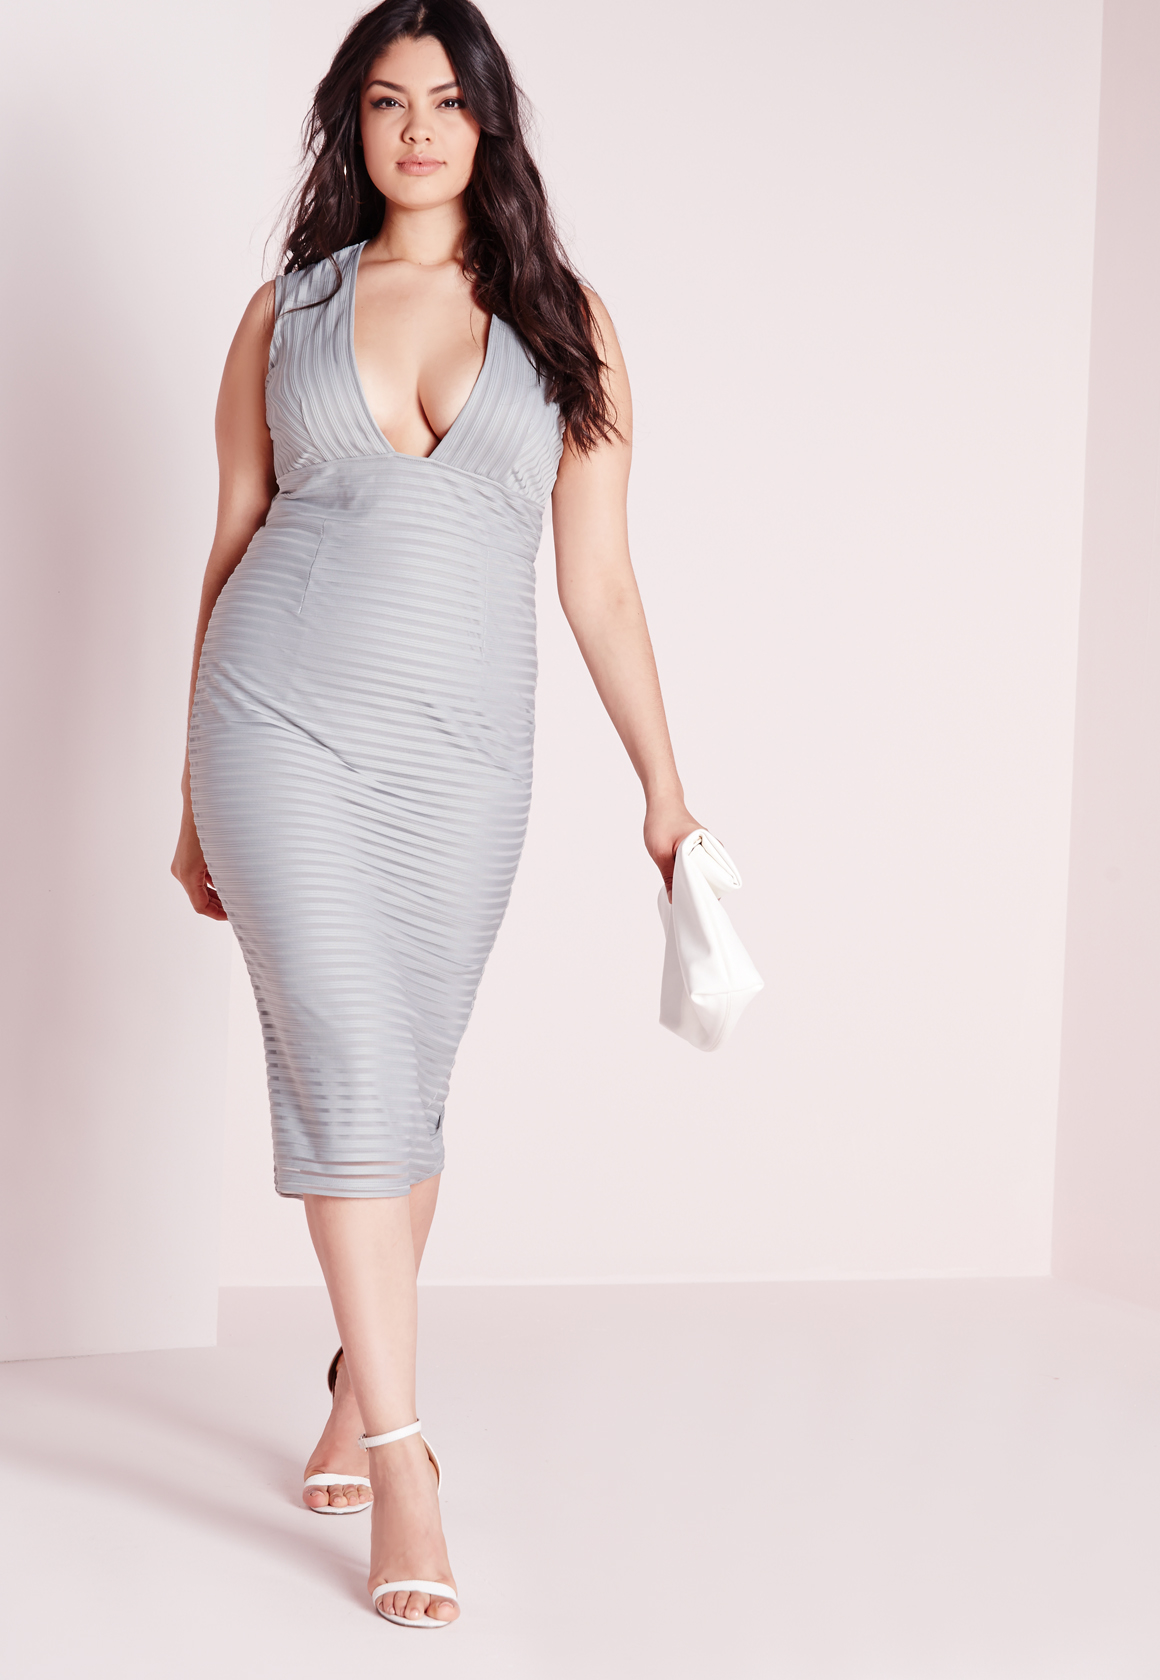 Lyst - Missguided Plus Size Ribbed Plunge Dress Grey in Gray